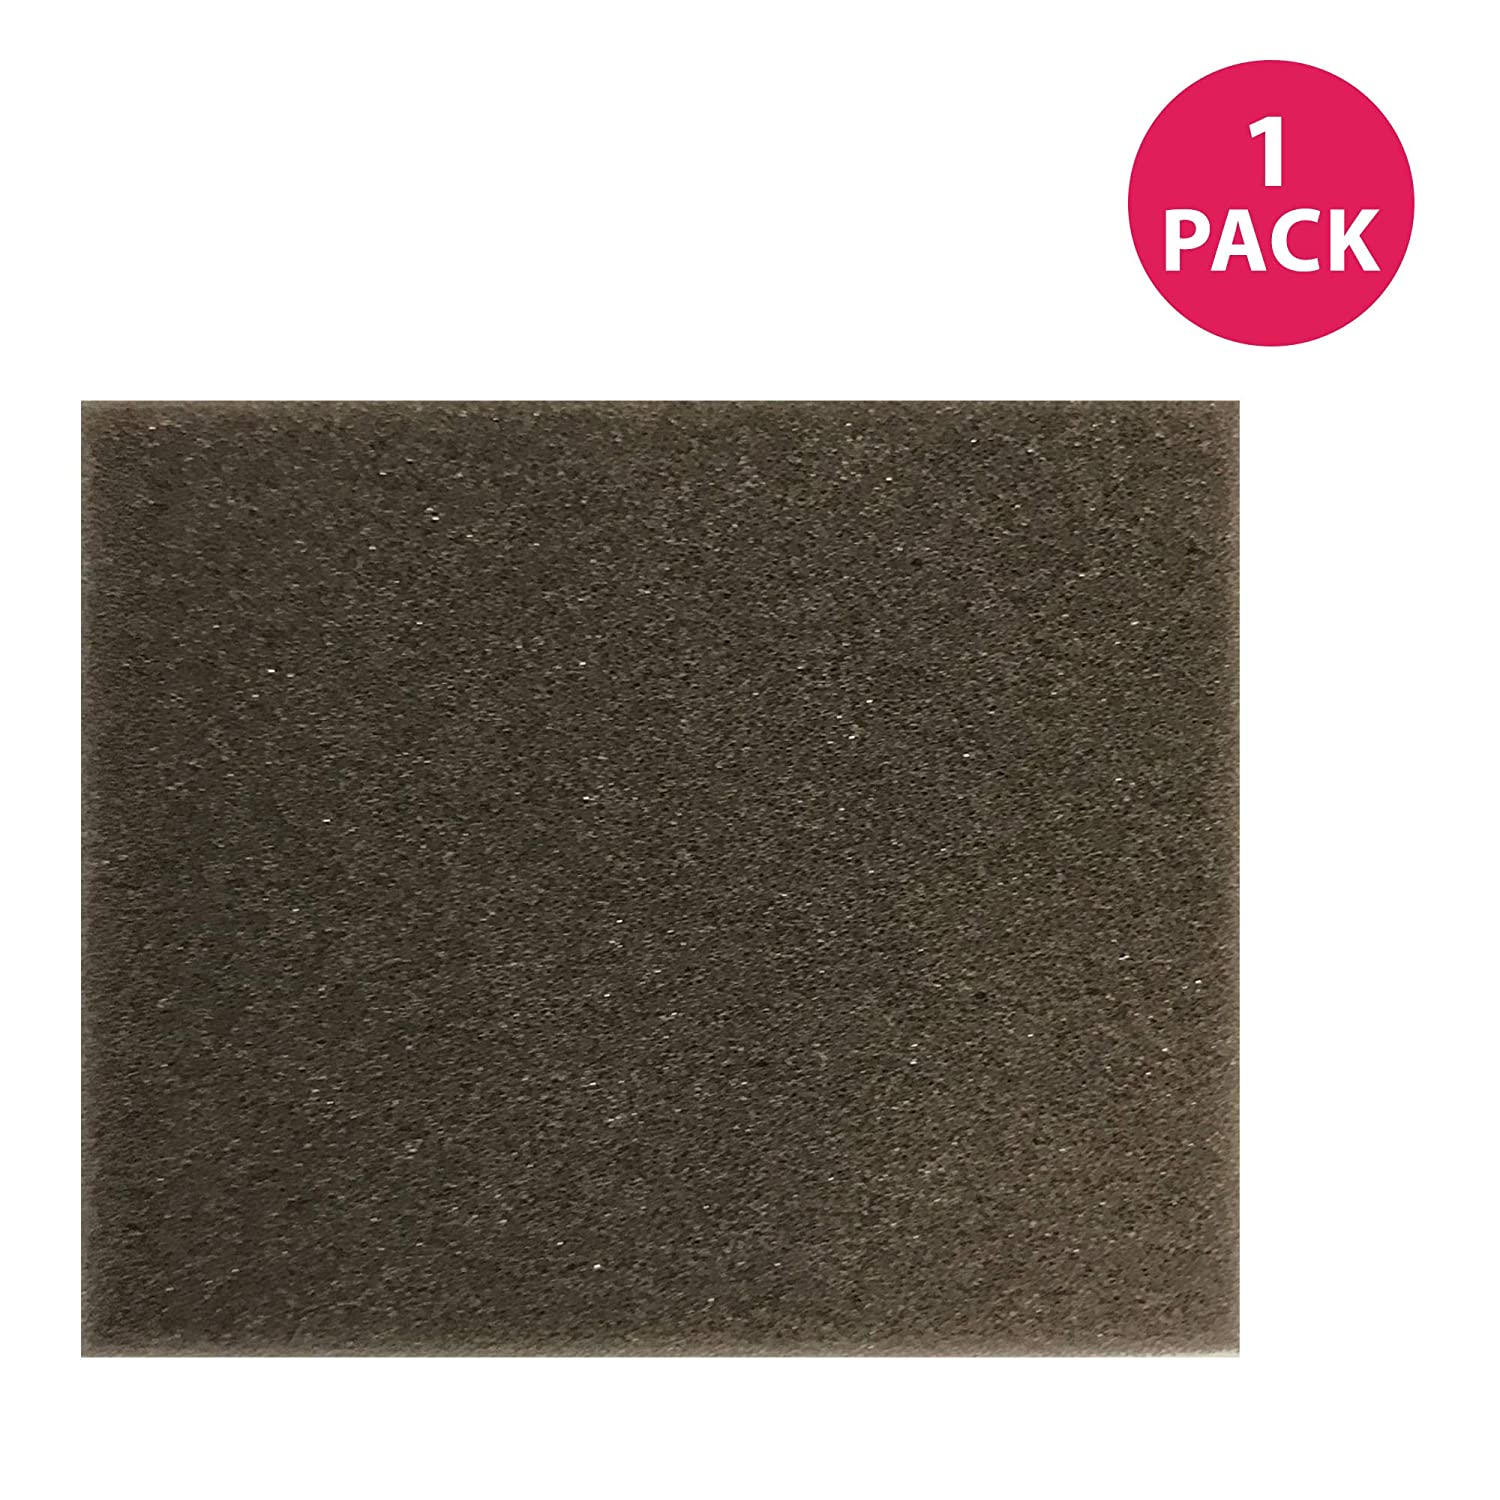 Think Crucial Replacement for Bissell Foam Filter Fits AeroSwift 1009 Series, Compatible with Part # 1600304, Washable & Reusable